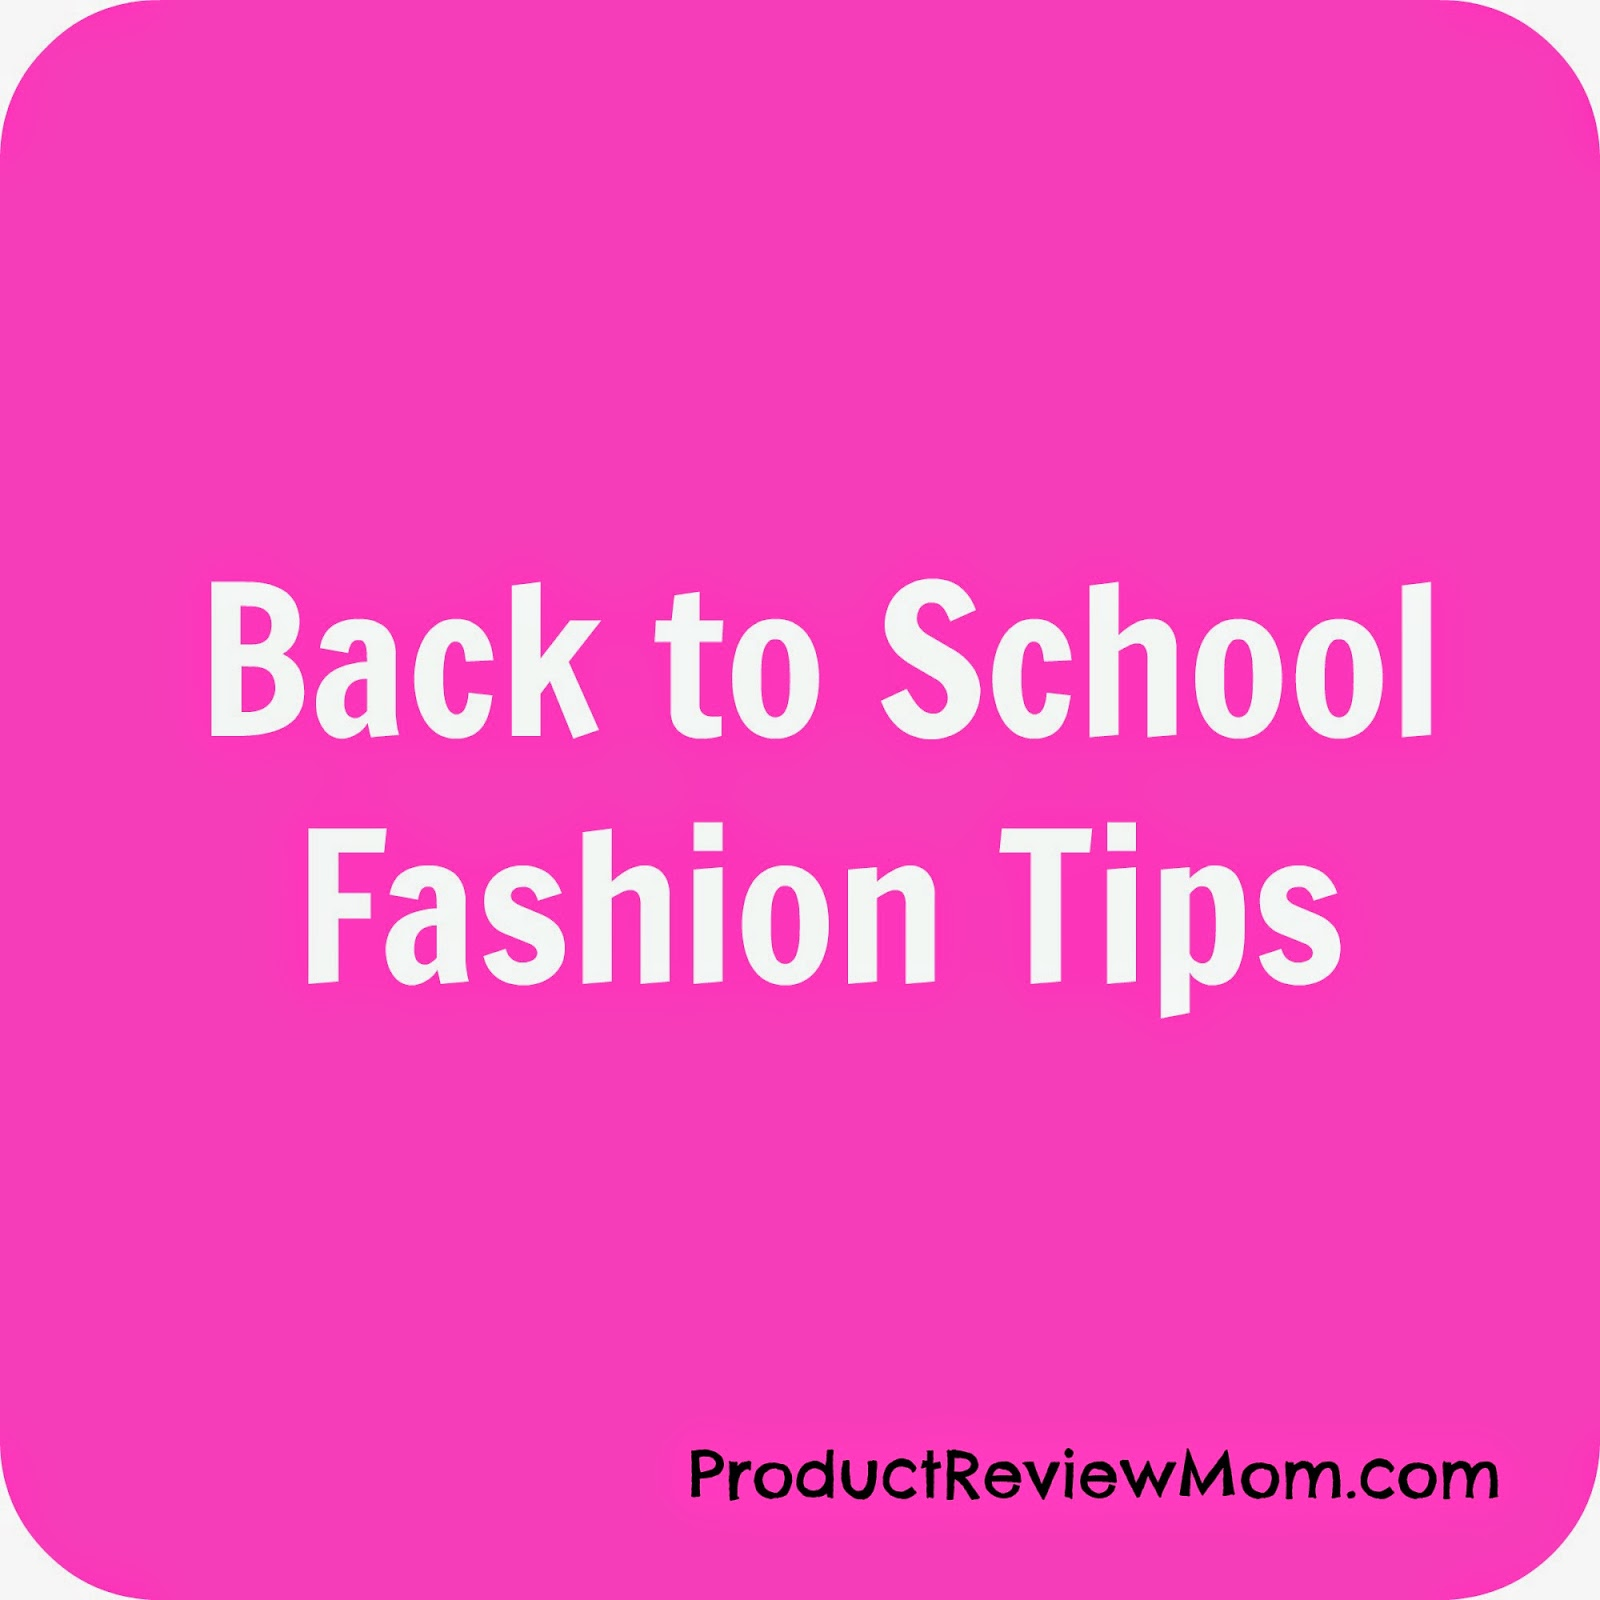 Back to School Fashion Tips #BacktoSchoolTips  via  www.productreviewmom.com